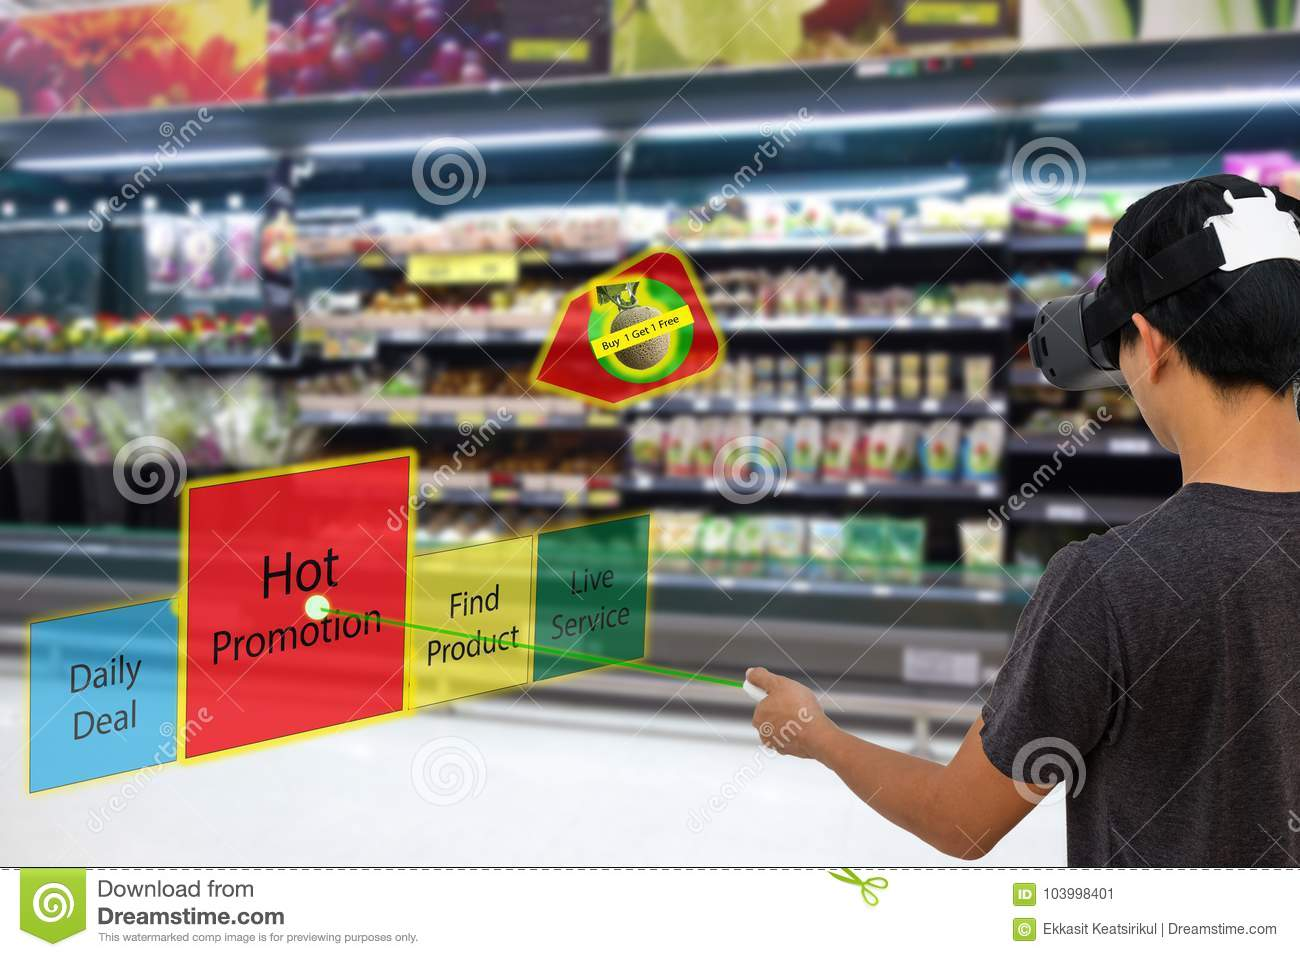 Smart retail with augmented and virtual reality technology concept, Customer use ar and vr glasses to search a daily deal,hot pro